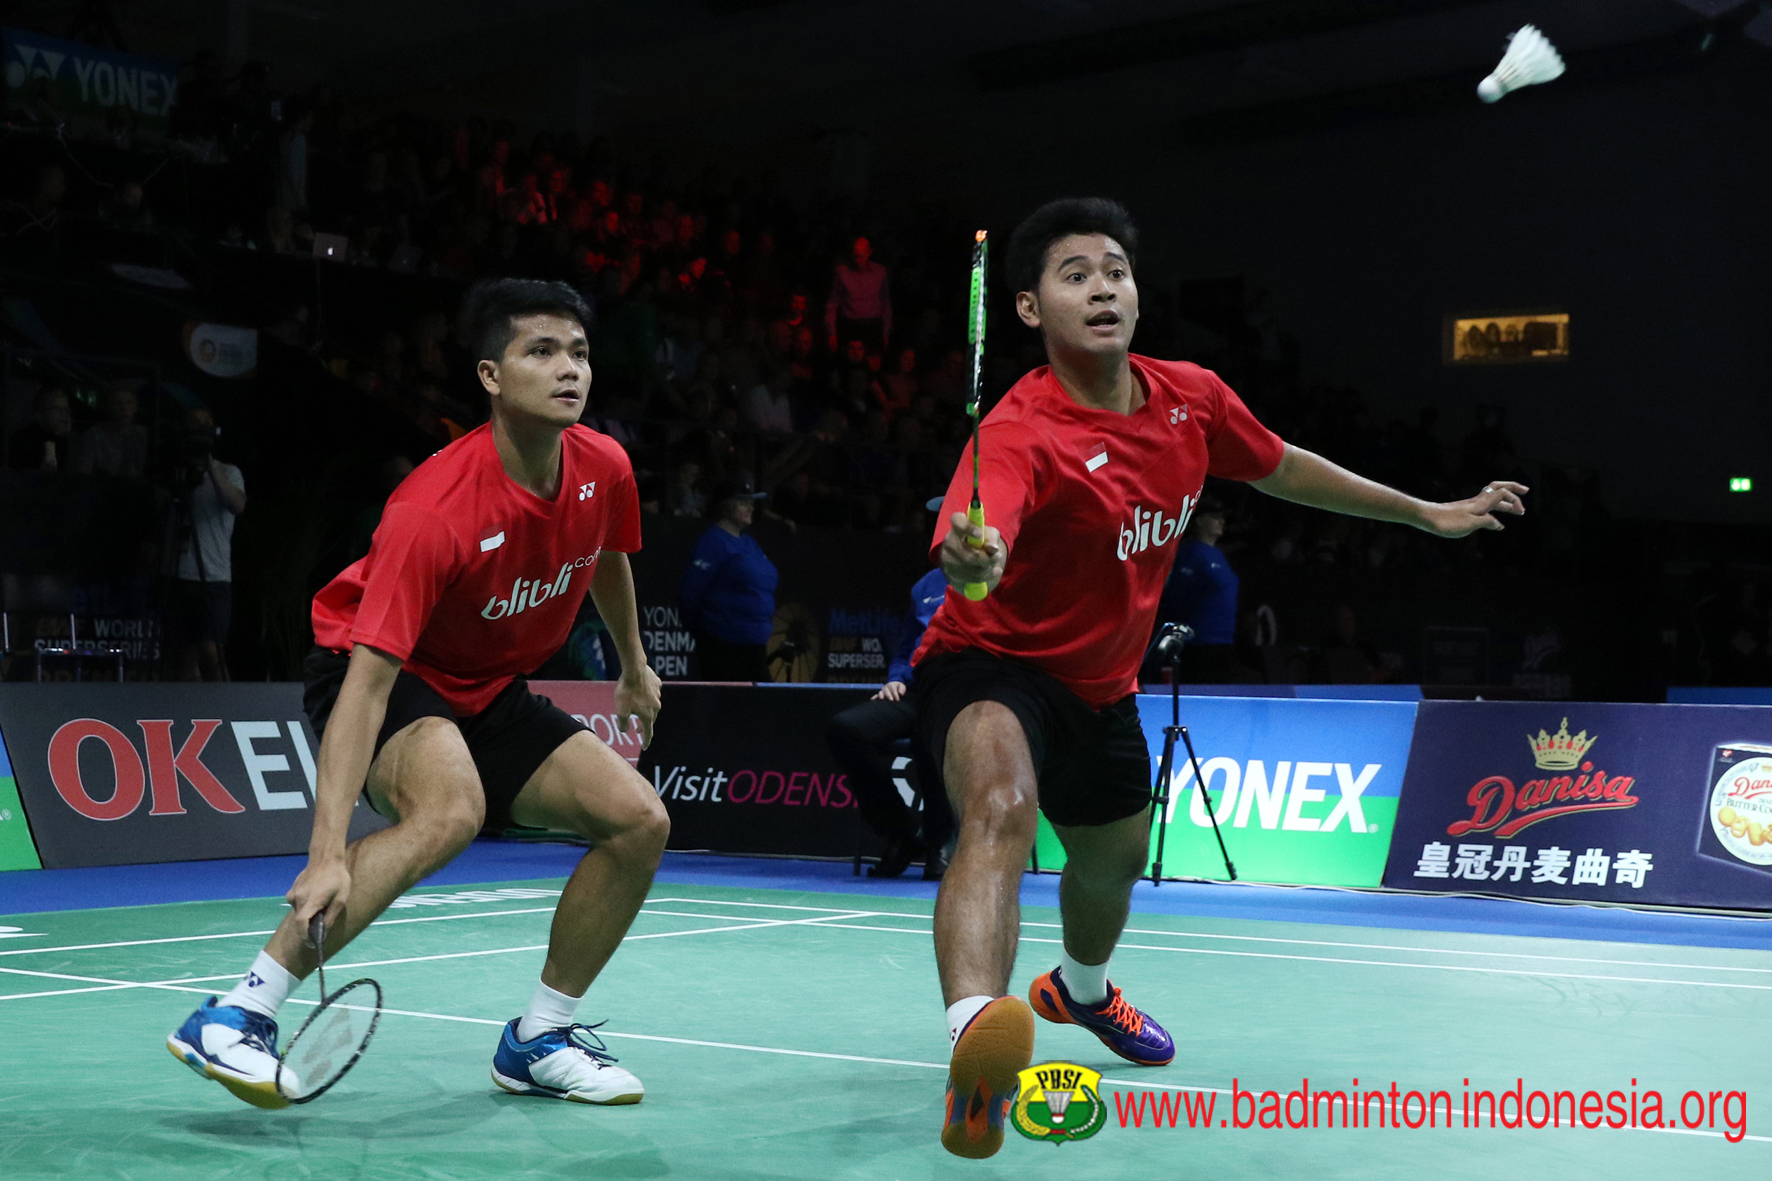 Djarum Badminton Denmark Open Super Series Premier 2016